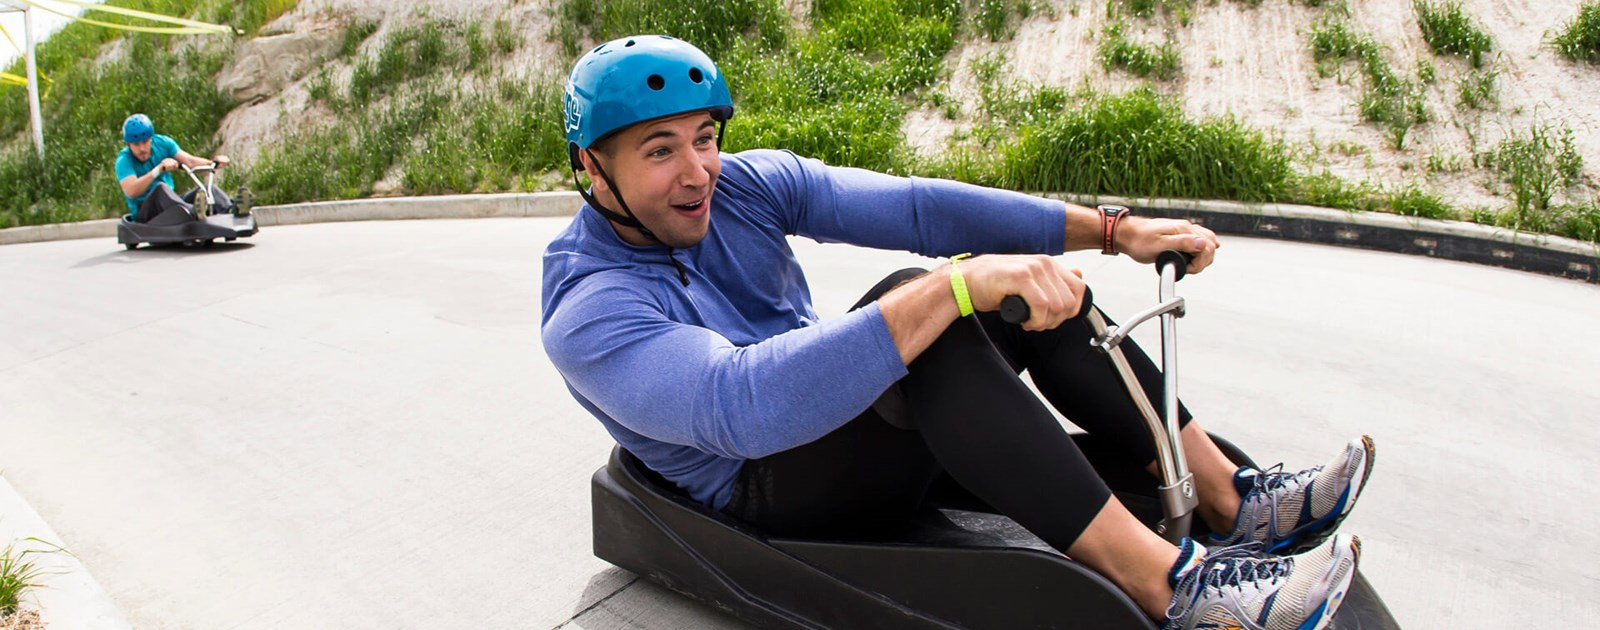 A man smiles as he races round a corner on his downhill kart at Skyline Luge Calgary.